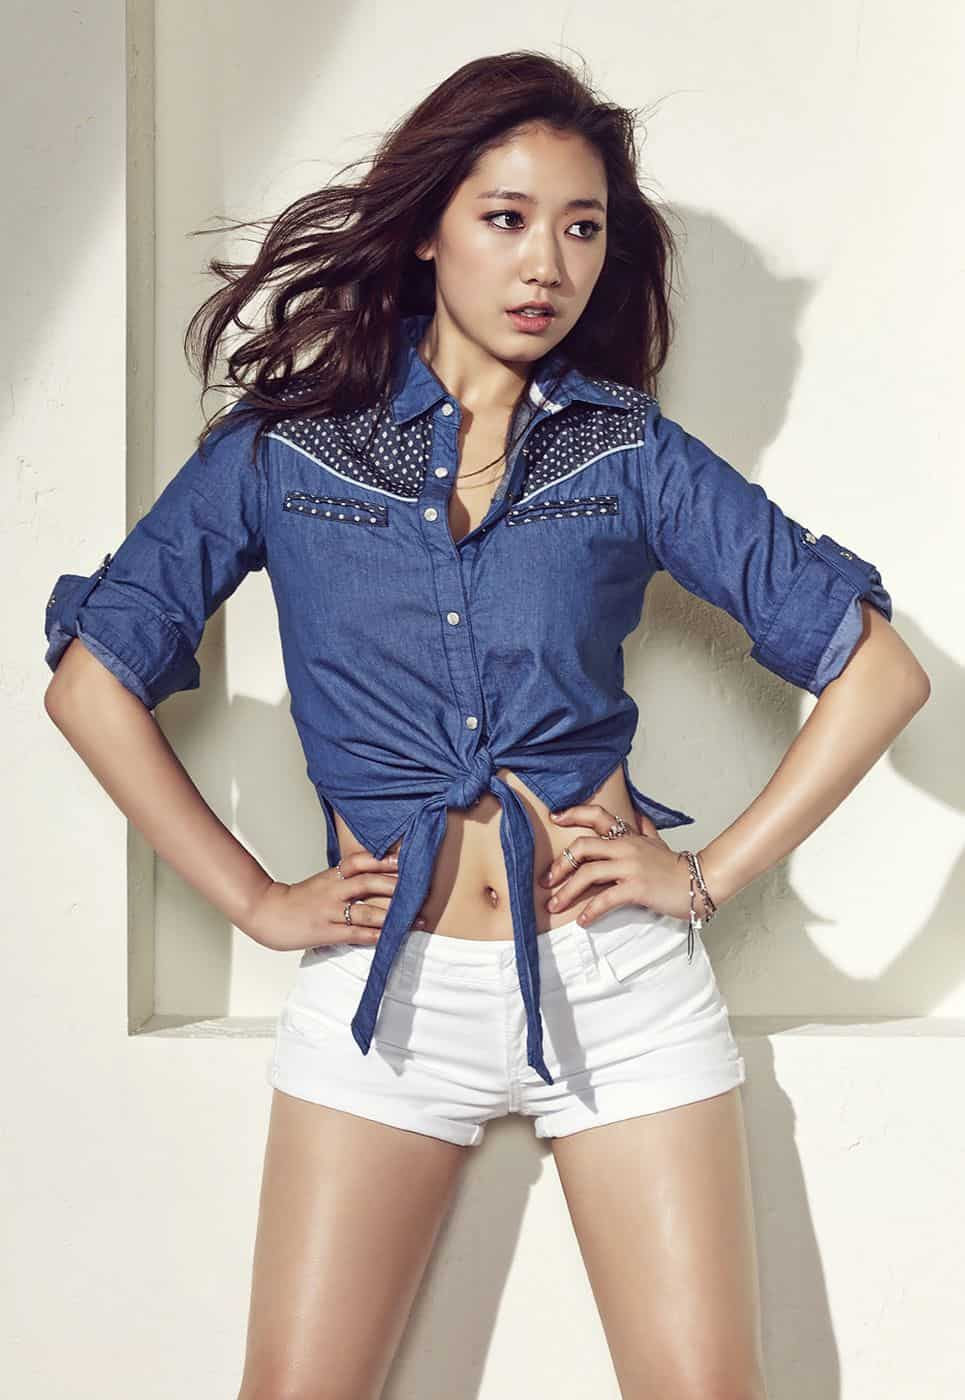 Park Shin Hye cute Korean